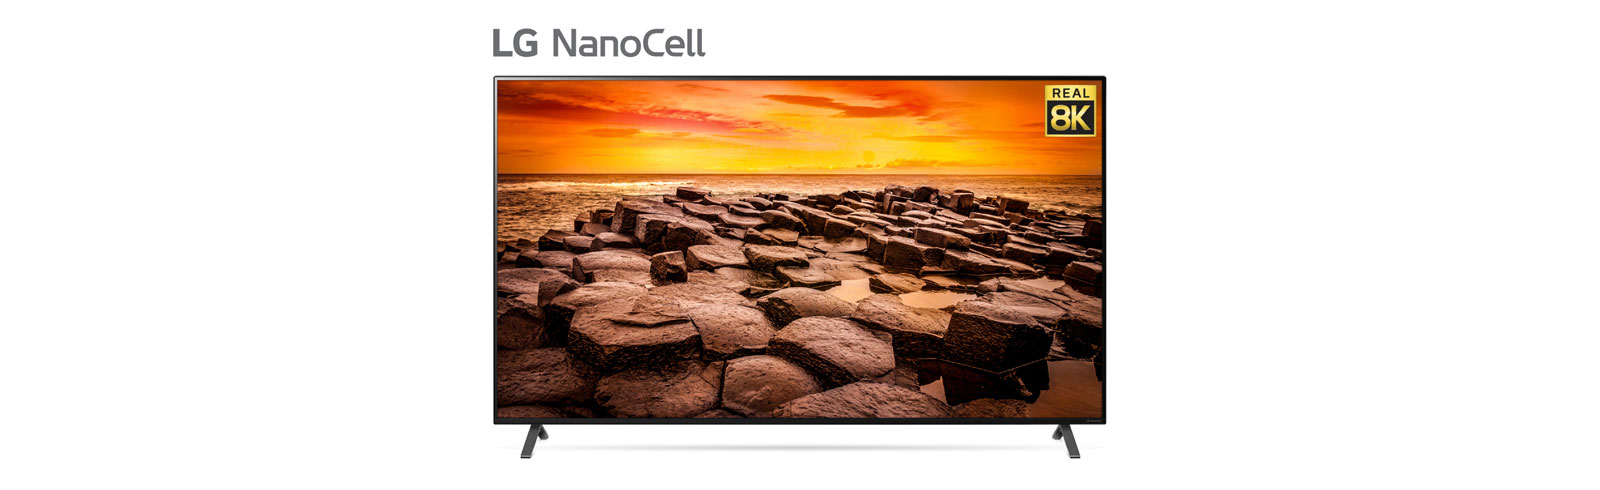 LG 2020 NanoCell TV lineup European launch, specifications and prices